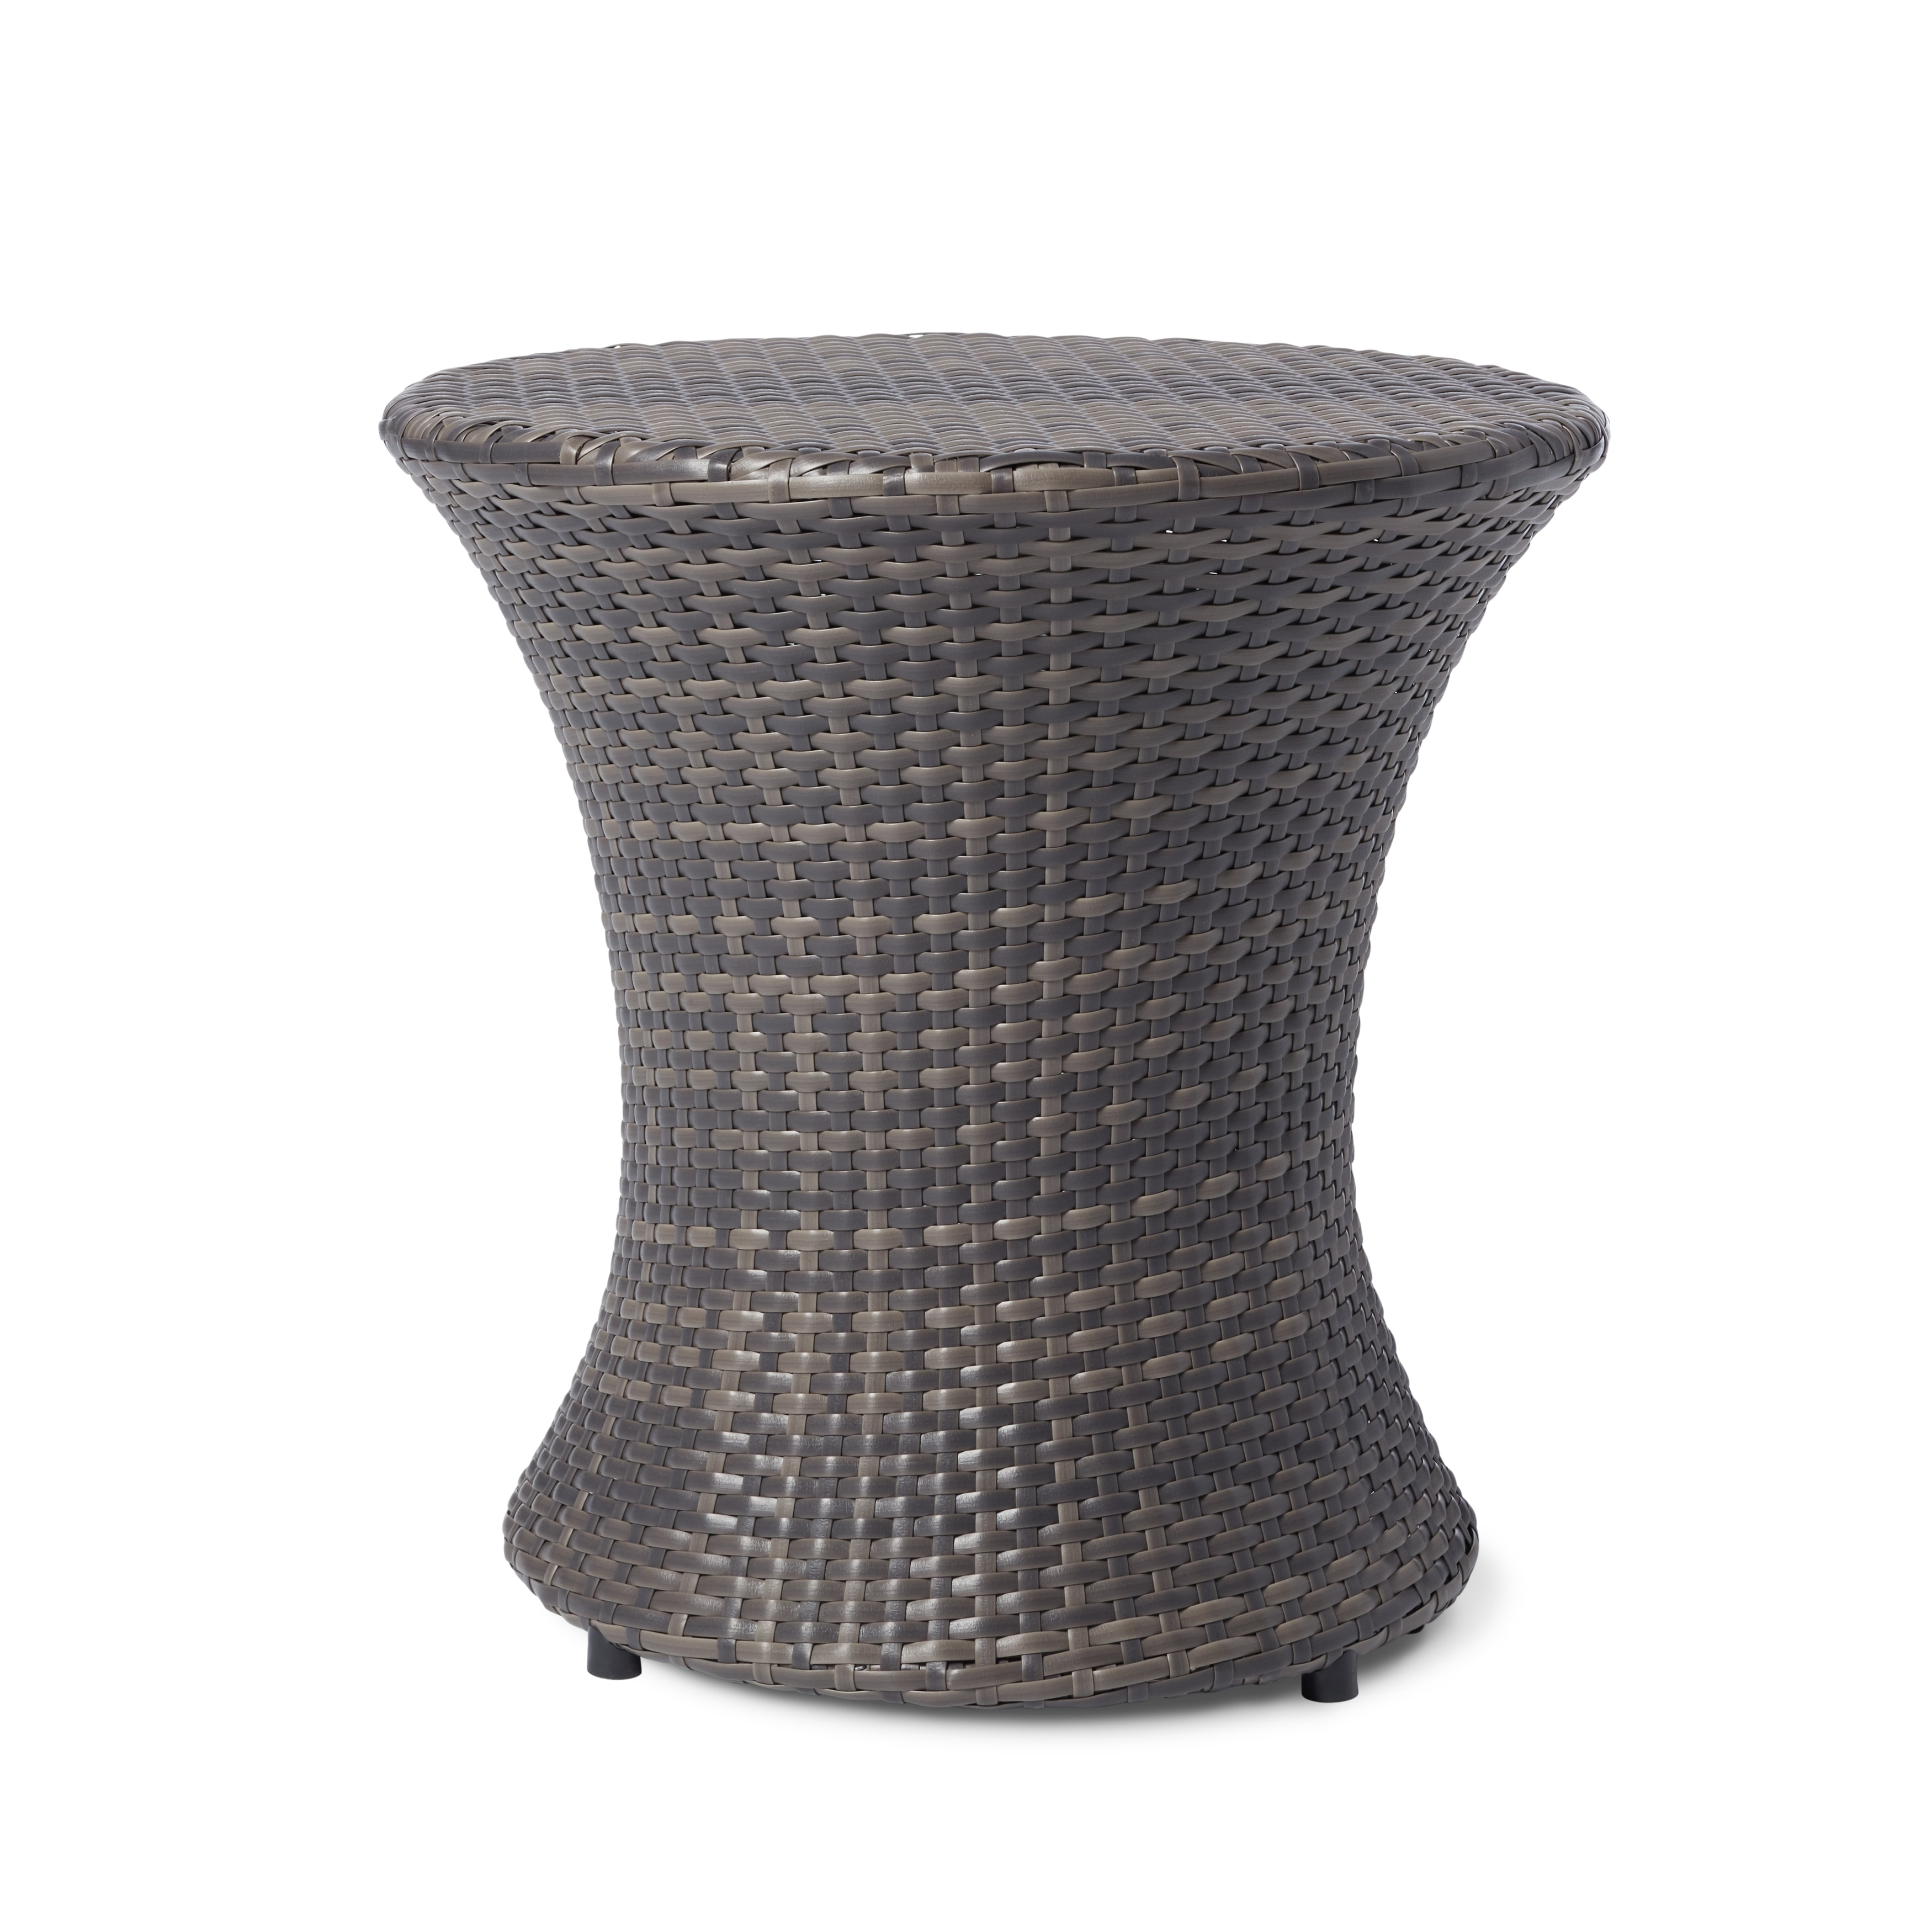 Adriana Pe Wicker Outdoor Side Table By Christopher Knight Home On Free Shipping Today 8682199